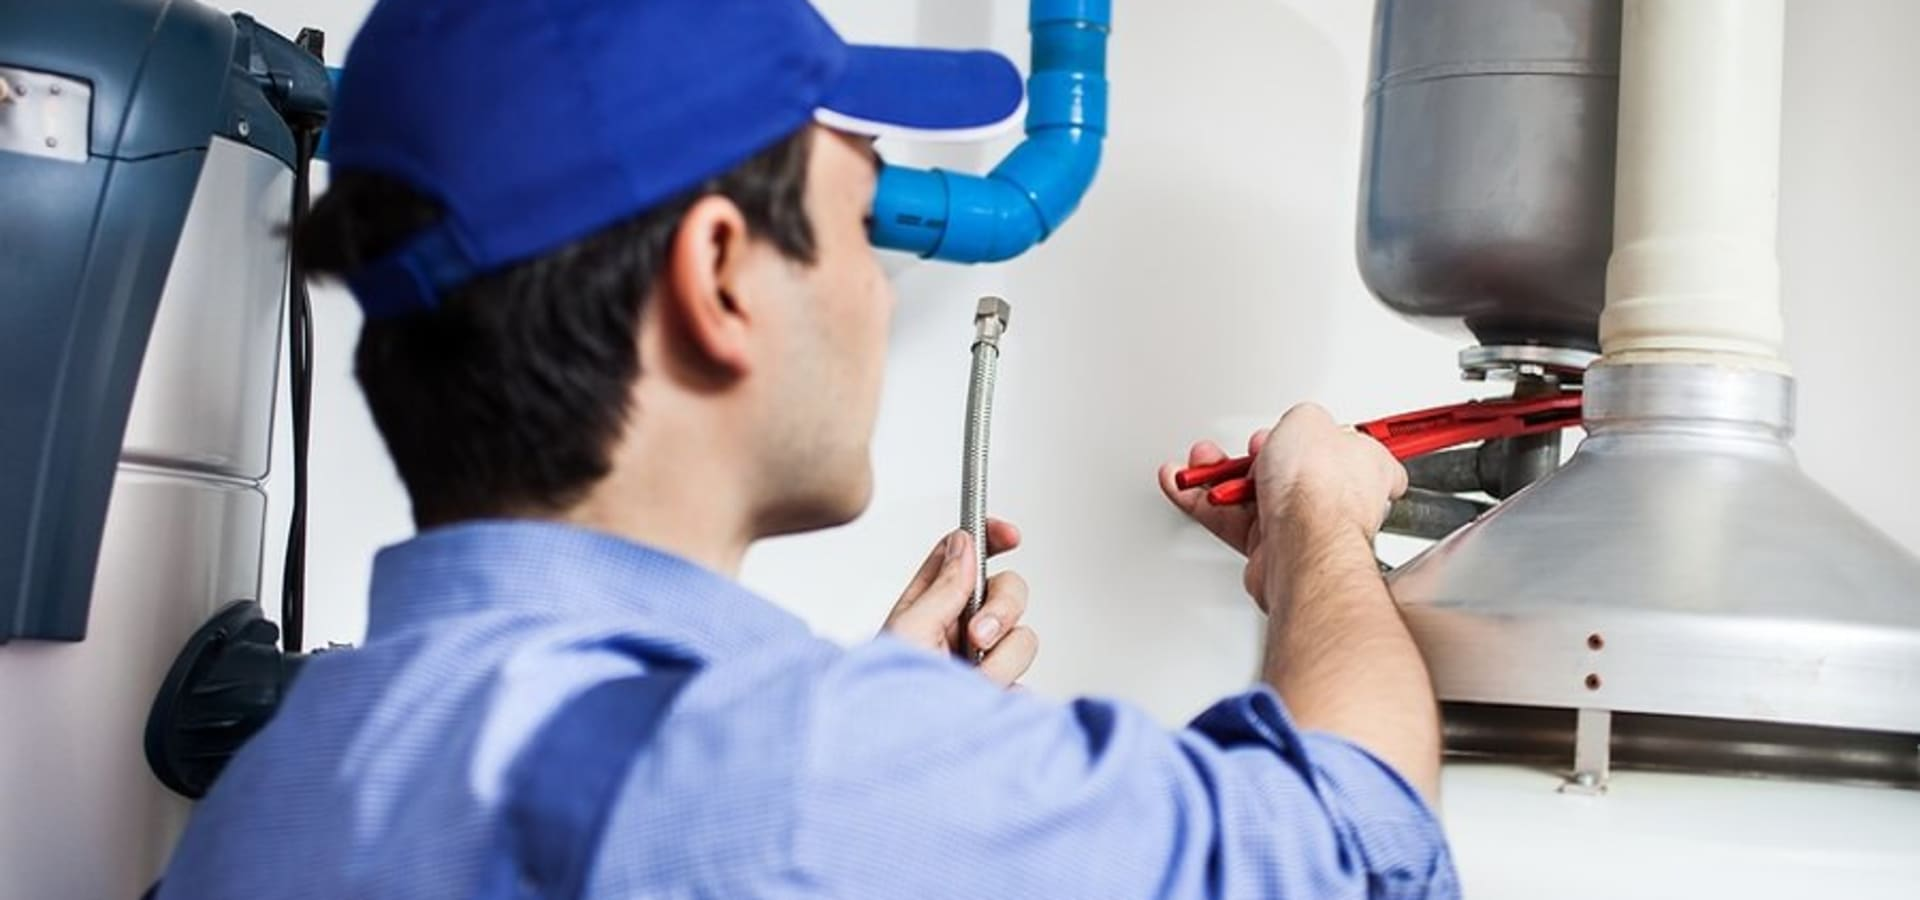 The Somerset West Plumber Pro (Pty) Ltd